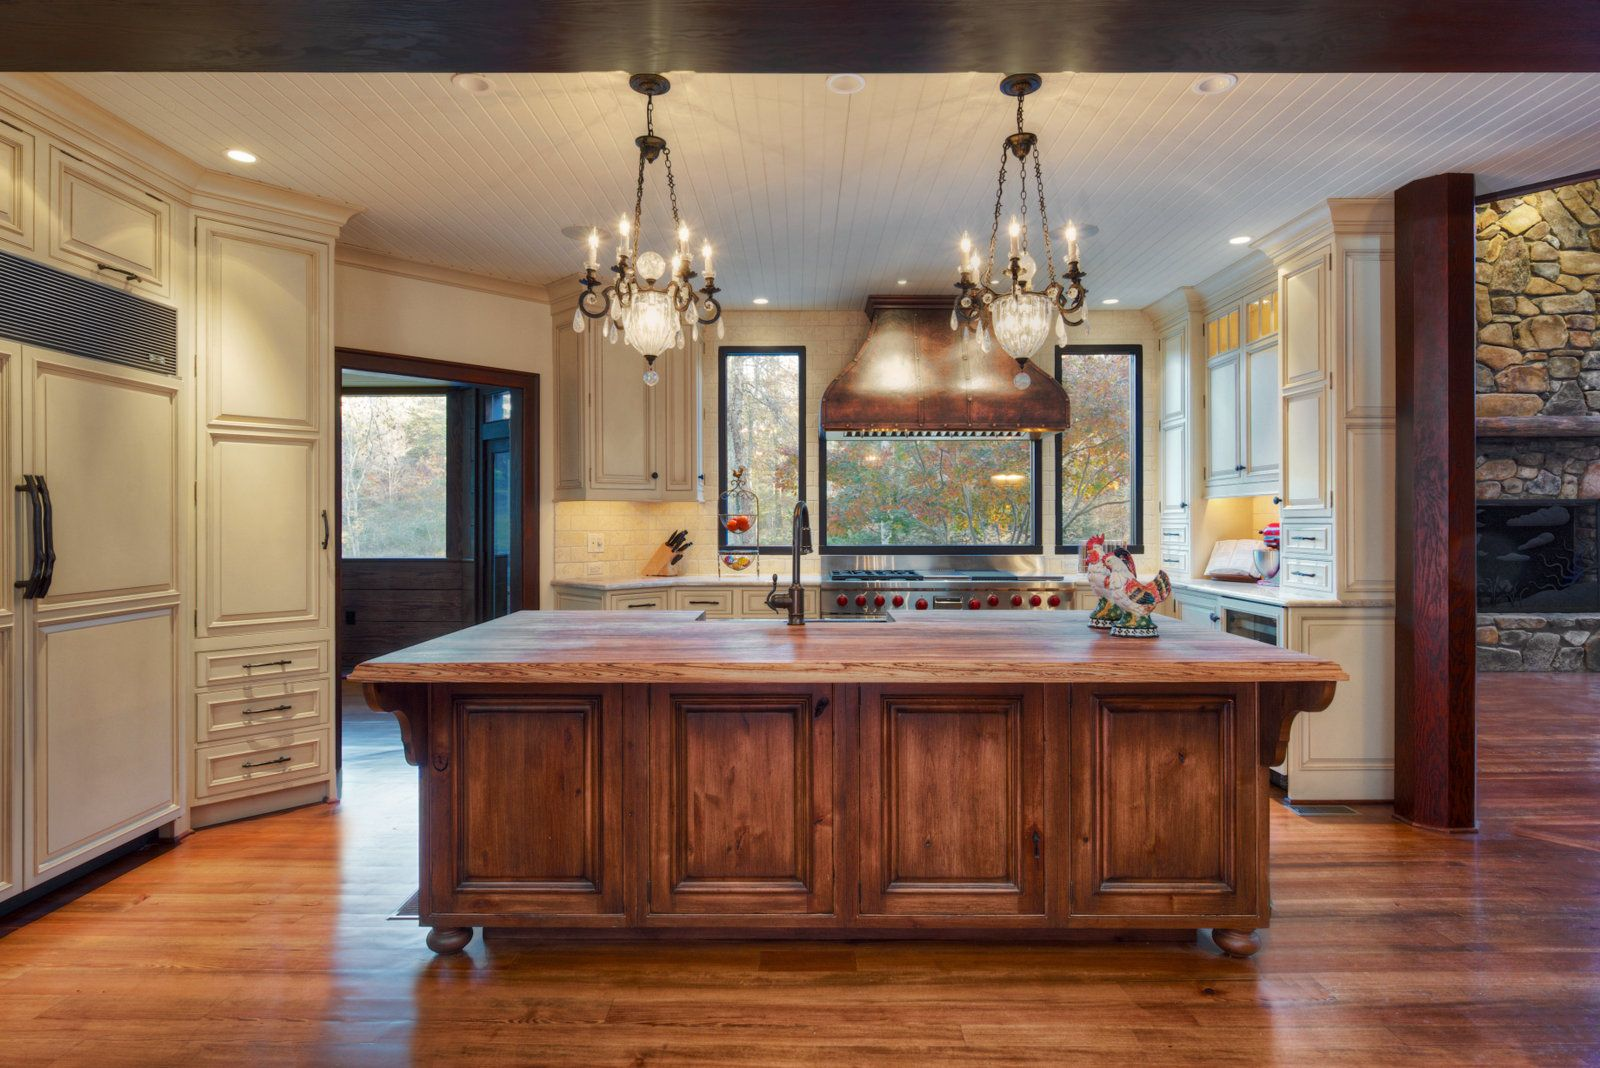 Doub Luxury Photo by Jay Sinclair Rustic kitchen